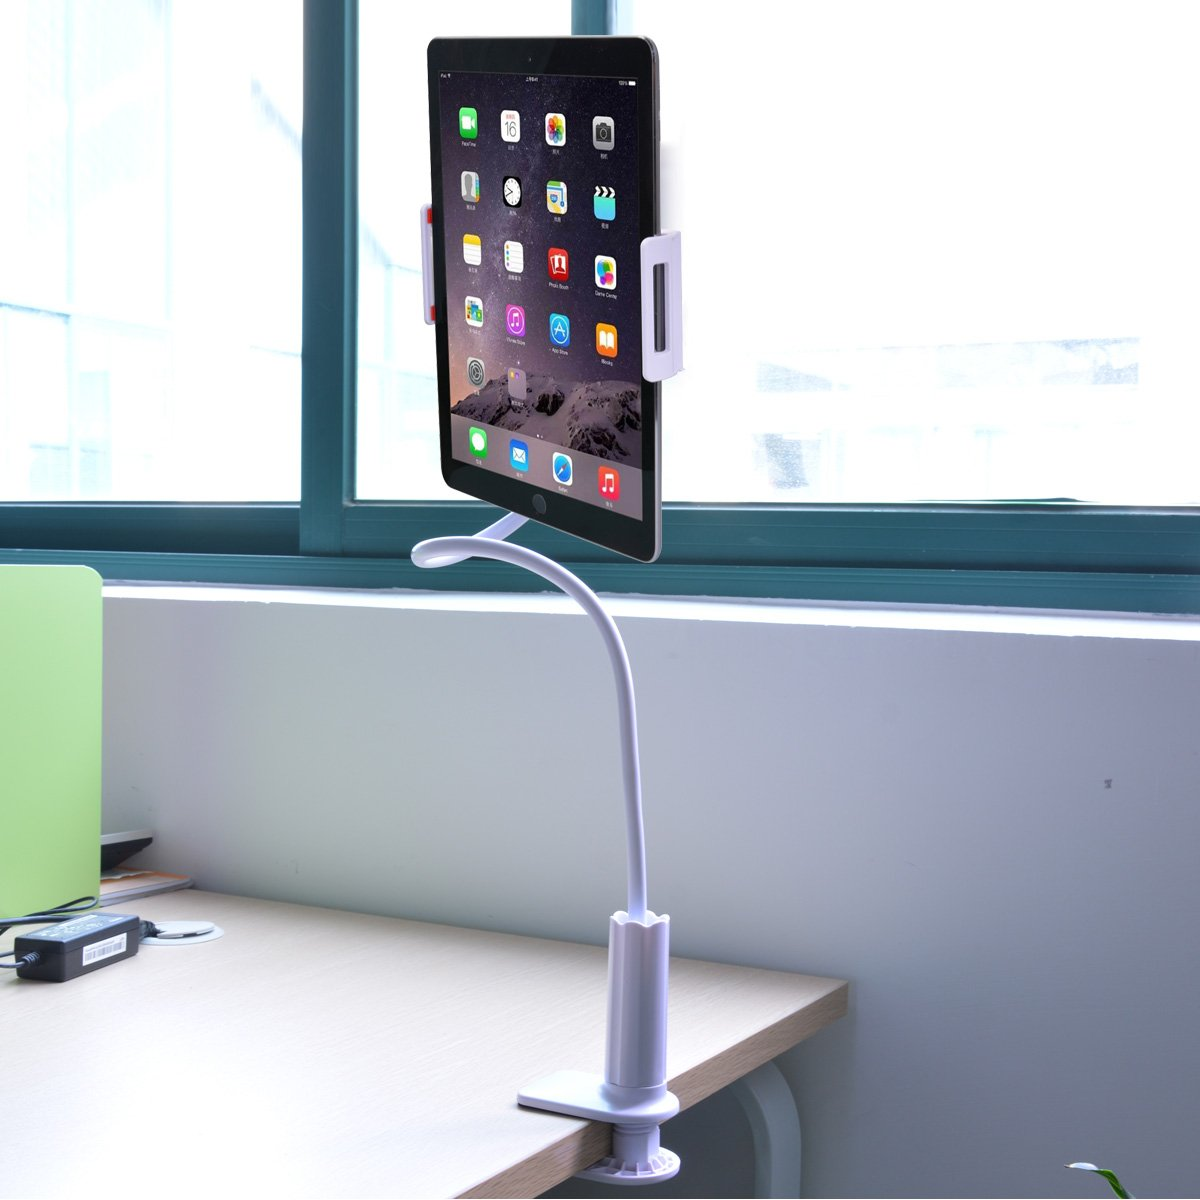 Tablet Stand, Flexible Arm & Clip 360 Degree Rotating Desktop Holder Mount for Apple iPhone 6s/Plus, iPad Air/mini/Pro 9.7\